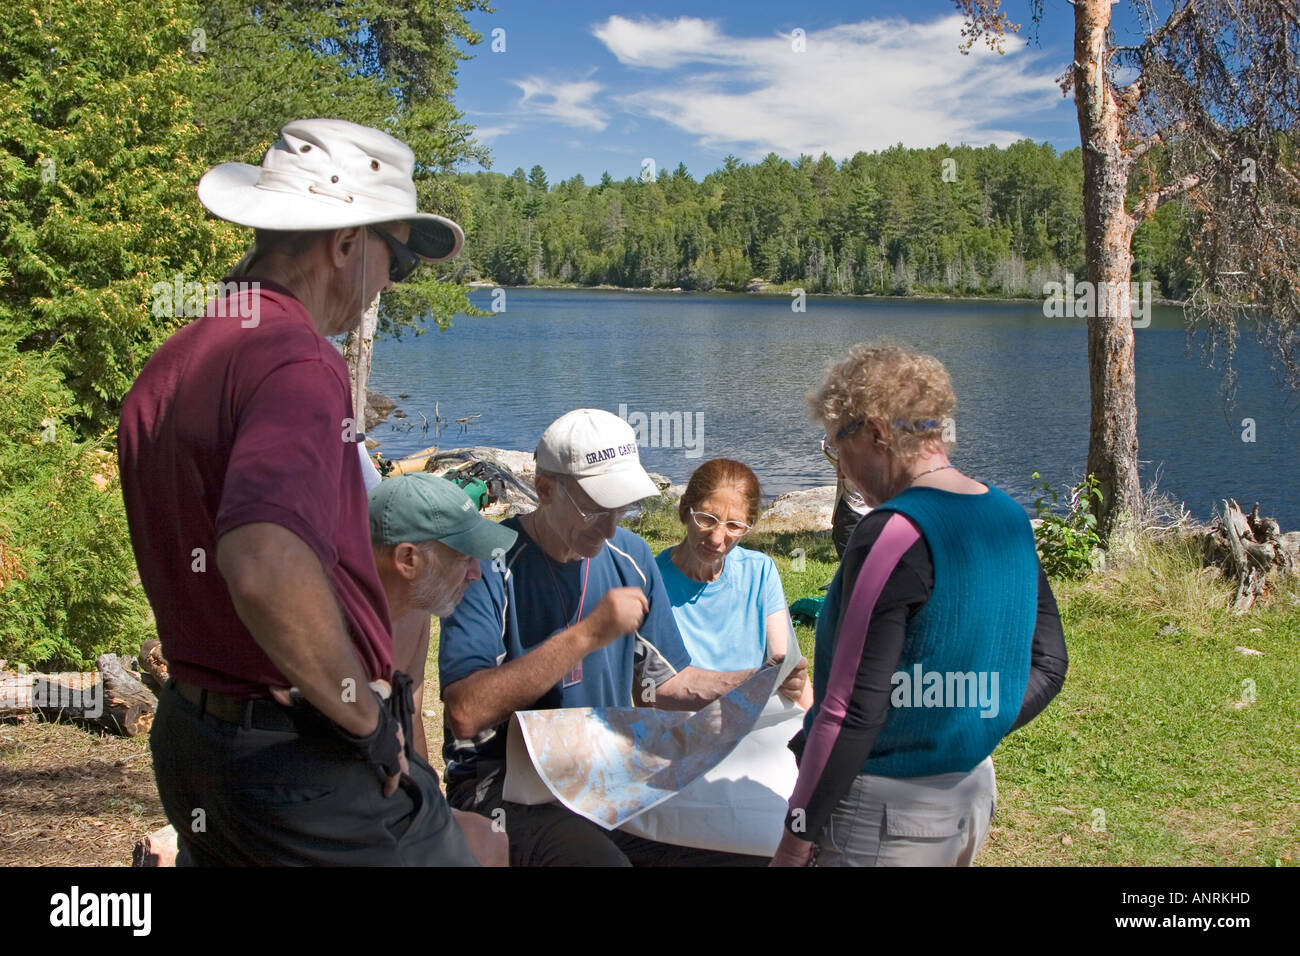 Quetico Provincial Park Ontario Canoe campers study a map at ... on woodland caribou provincial park map, gros morne national park, polar bear provincial park map, french river, killarney provincial park map, sleeping giant provincial park, pukaskwa national park, algonquin provincial park, quttinirpaaq national park, bruce peninsula national park, frontenac provincial park, sleeping giant provincial park map, awenda provincial park map, st. lawrence islands national park, bon echo provincial park, rainbow falls provincial park map, la mauricie national park map, lake superior provincial park, georgian bay islands national park, fathom five national marine park, lady evelyn-smoothwater provincial park map, french river provincial park map, wabakimi provincial park map, frontenac provincial park map, bon echo provincial park map, long point provincial park map, sandbanks provincial park map, killarney provincial park, finlayson point provincial park, rondeau provincial park map, duck mountain provincial park map, la verendrye provincial park map, ipperwash provincial park map, kawartha highlands provincial park map, nahanni national park reserve, polar bear provincial park, pinery provincial park map, lady evelyn-smoothwater provincial park, point pelee national park, sandbanks provincial park,